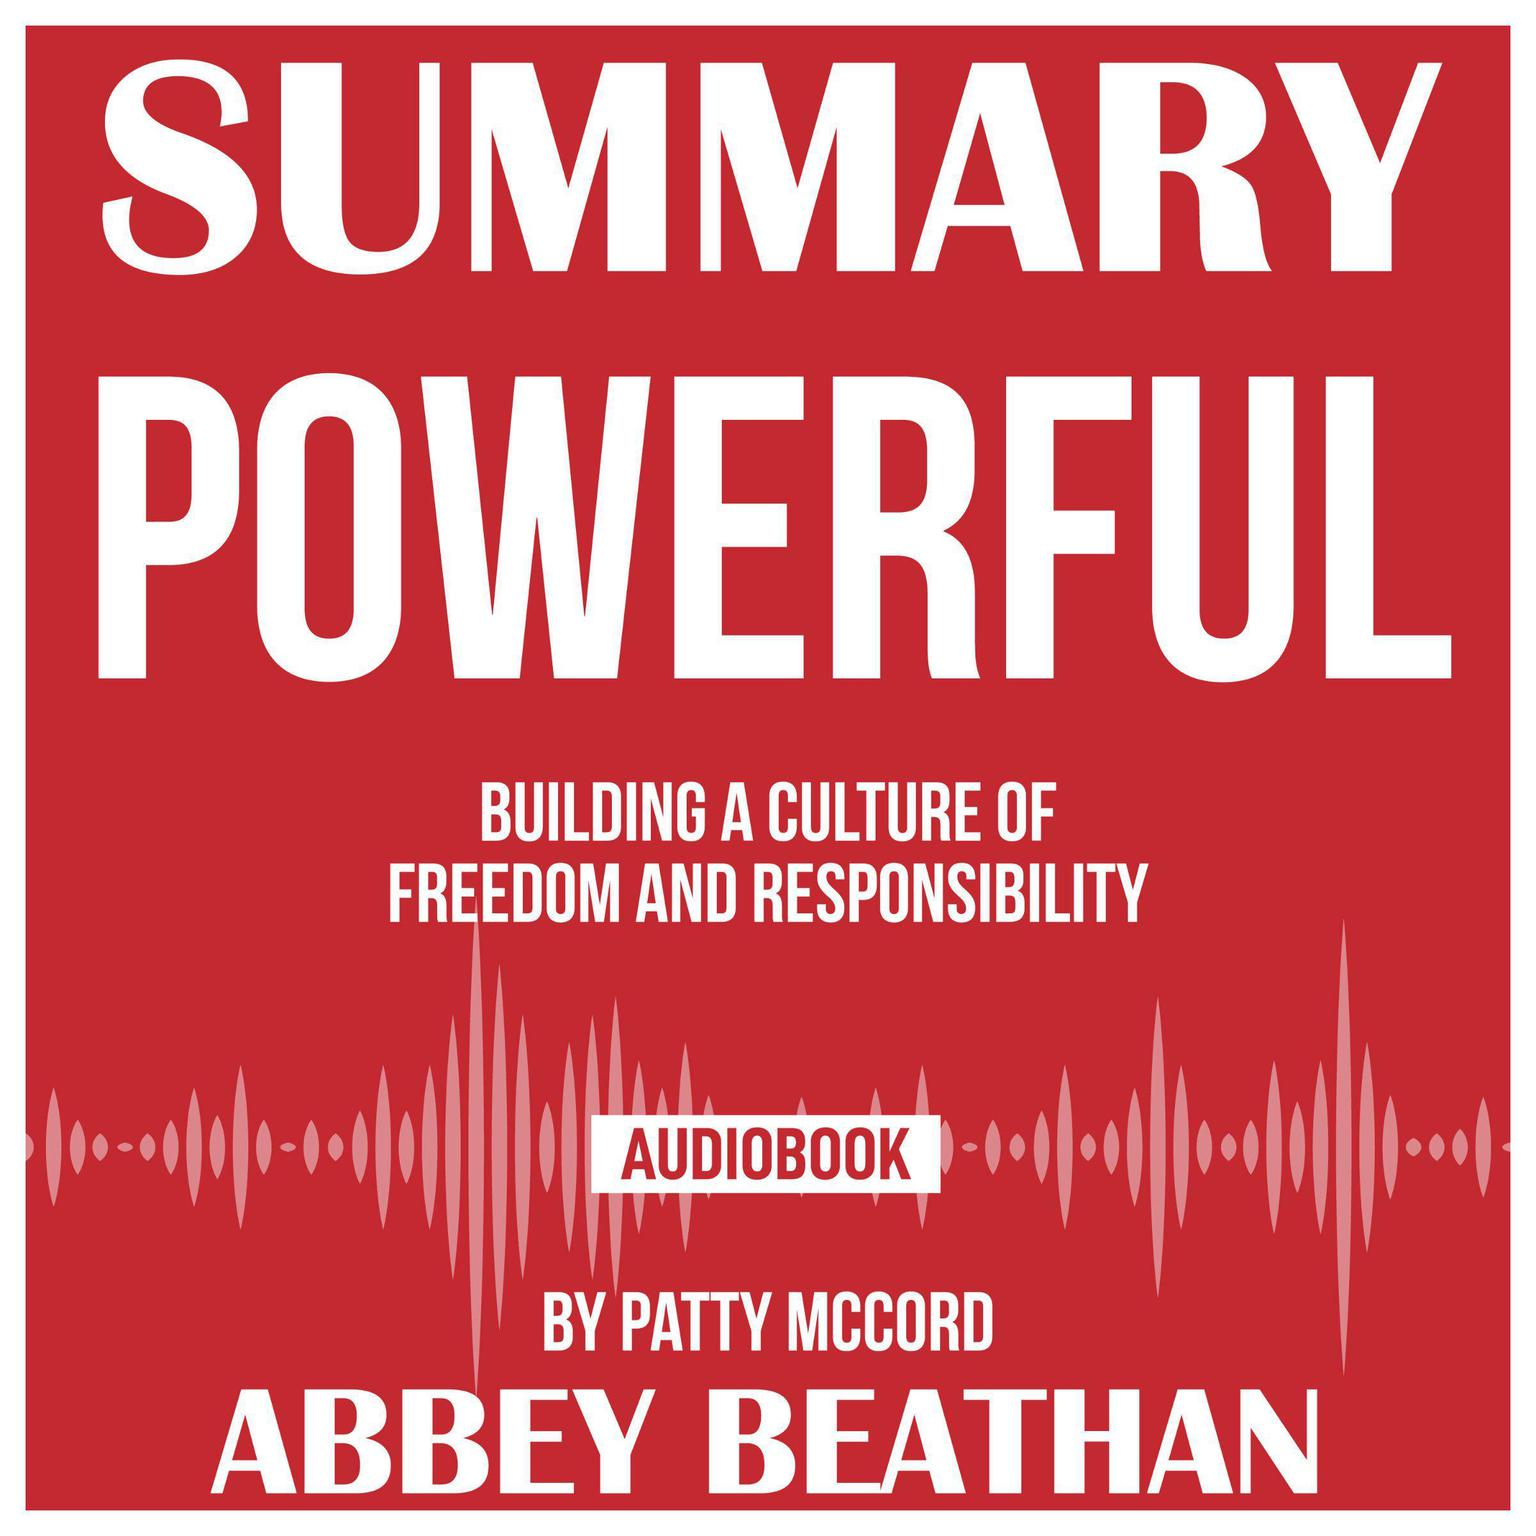 Powerful Building a Culture of Freedom and Responsibility